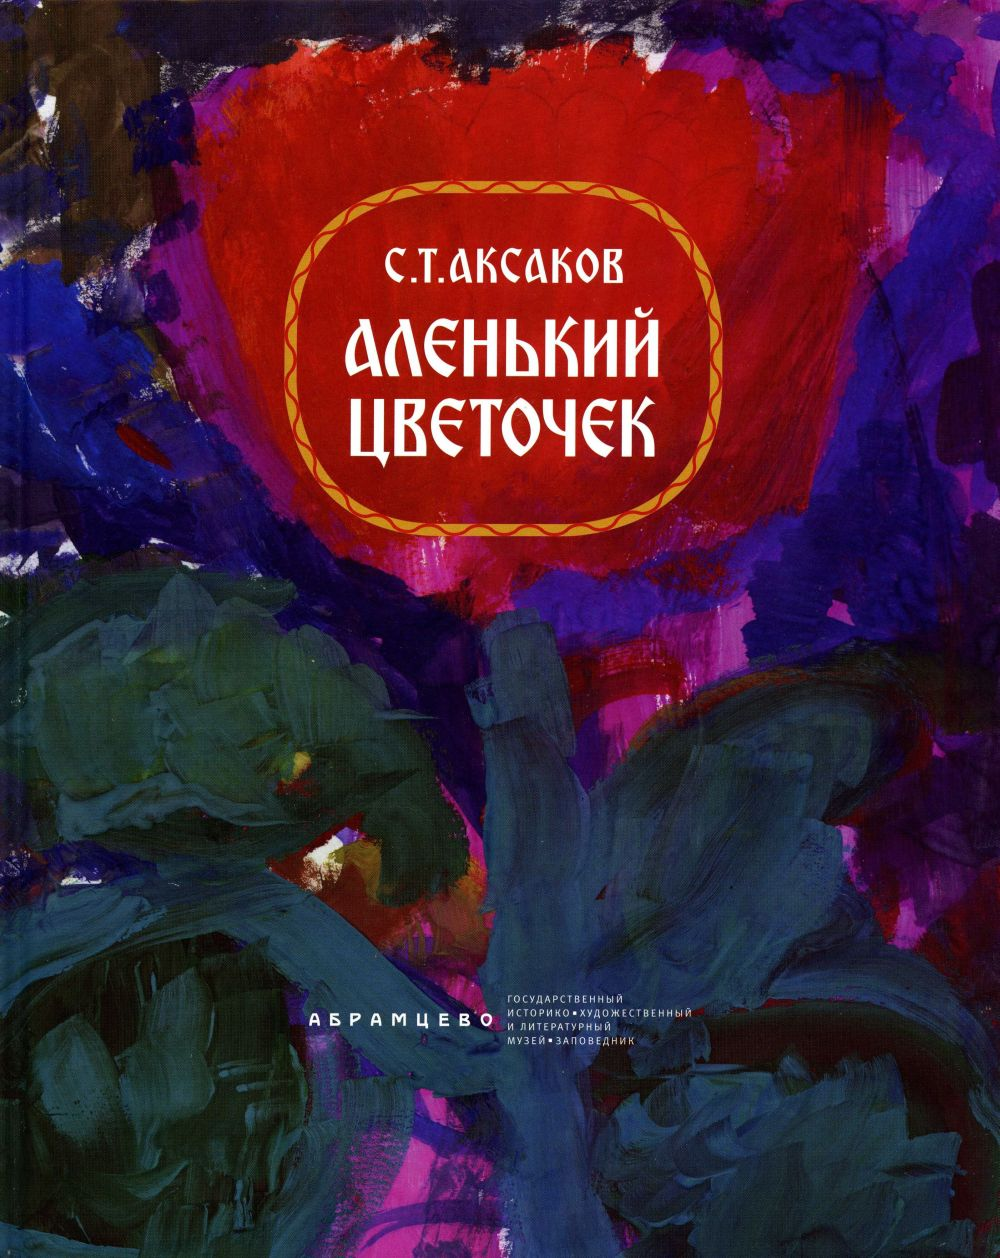 We remember our favorite childrens tales. Summary: The Scarlet Flower by S.T. Aksakova